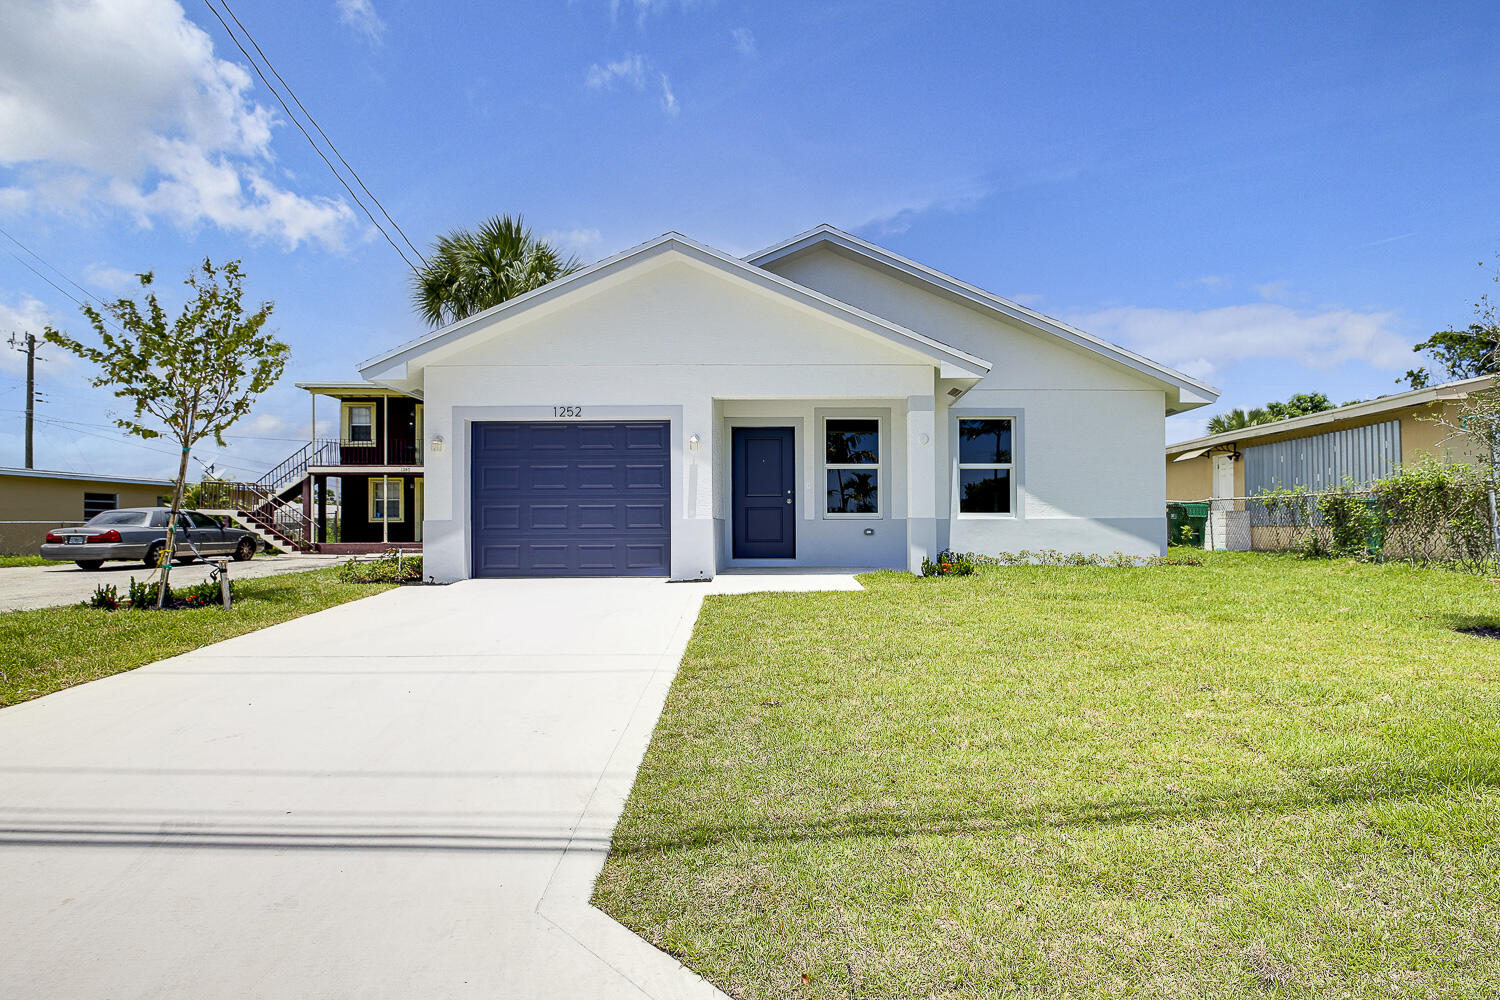 Photo of 1252 Dr Martin Luther King Jr Boulevard, Riviera Beach, FL 33404